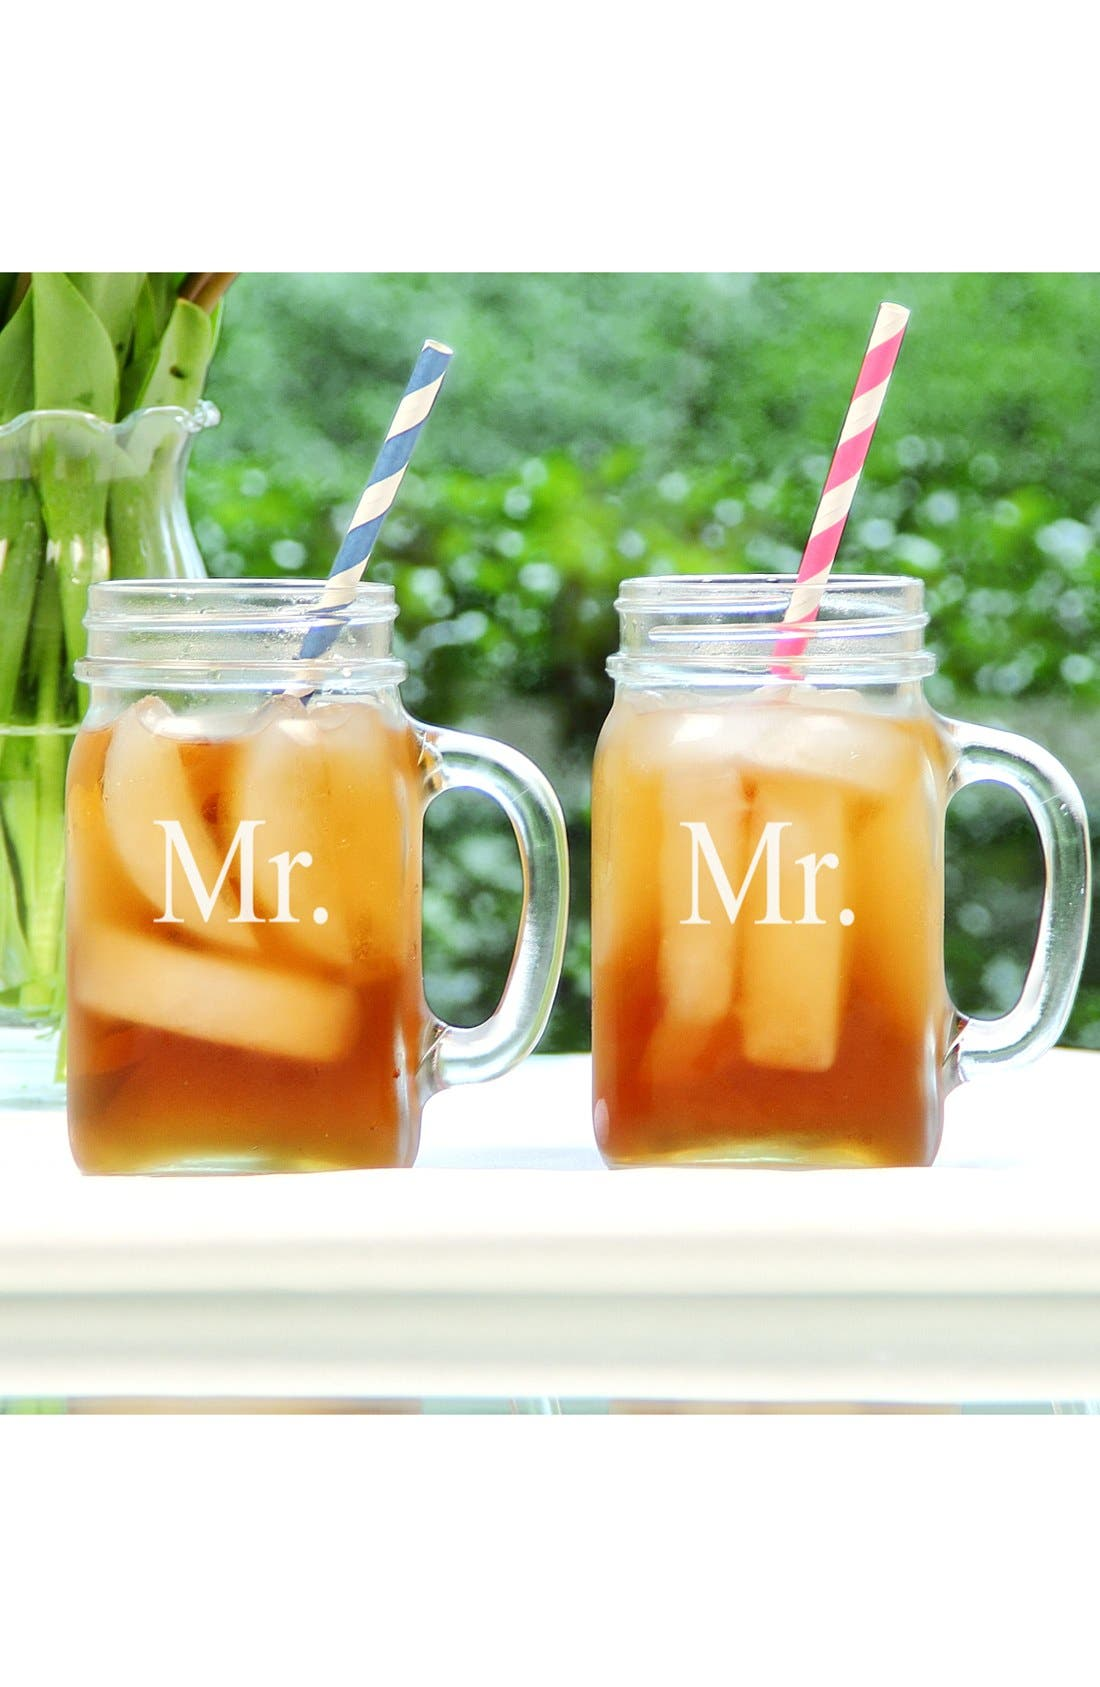 Main Image - Cathy's Concepts 'For The Couple' Mason Jar Glasses with Handles (Set of 2)